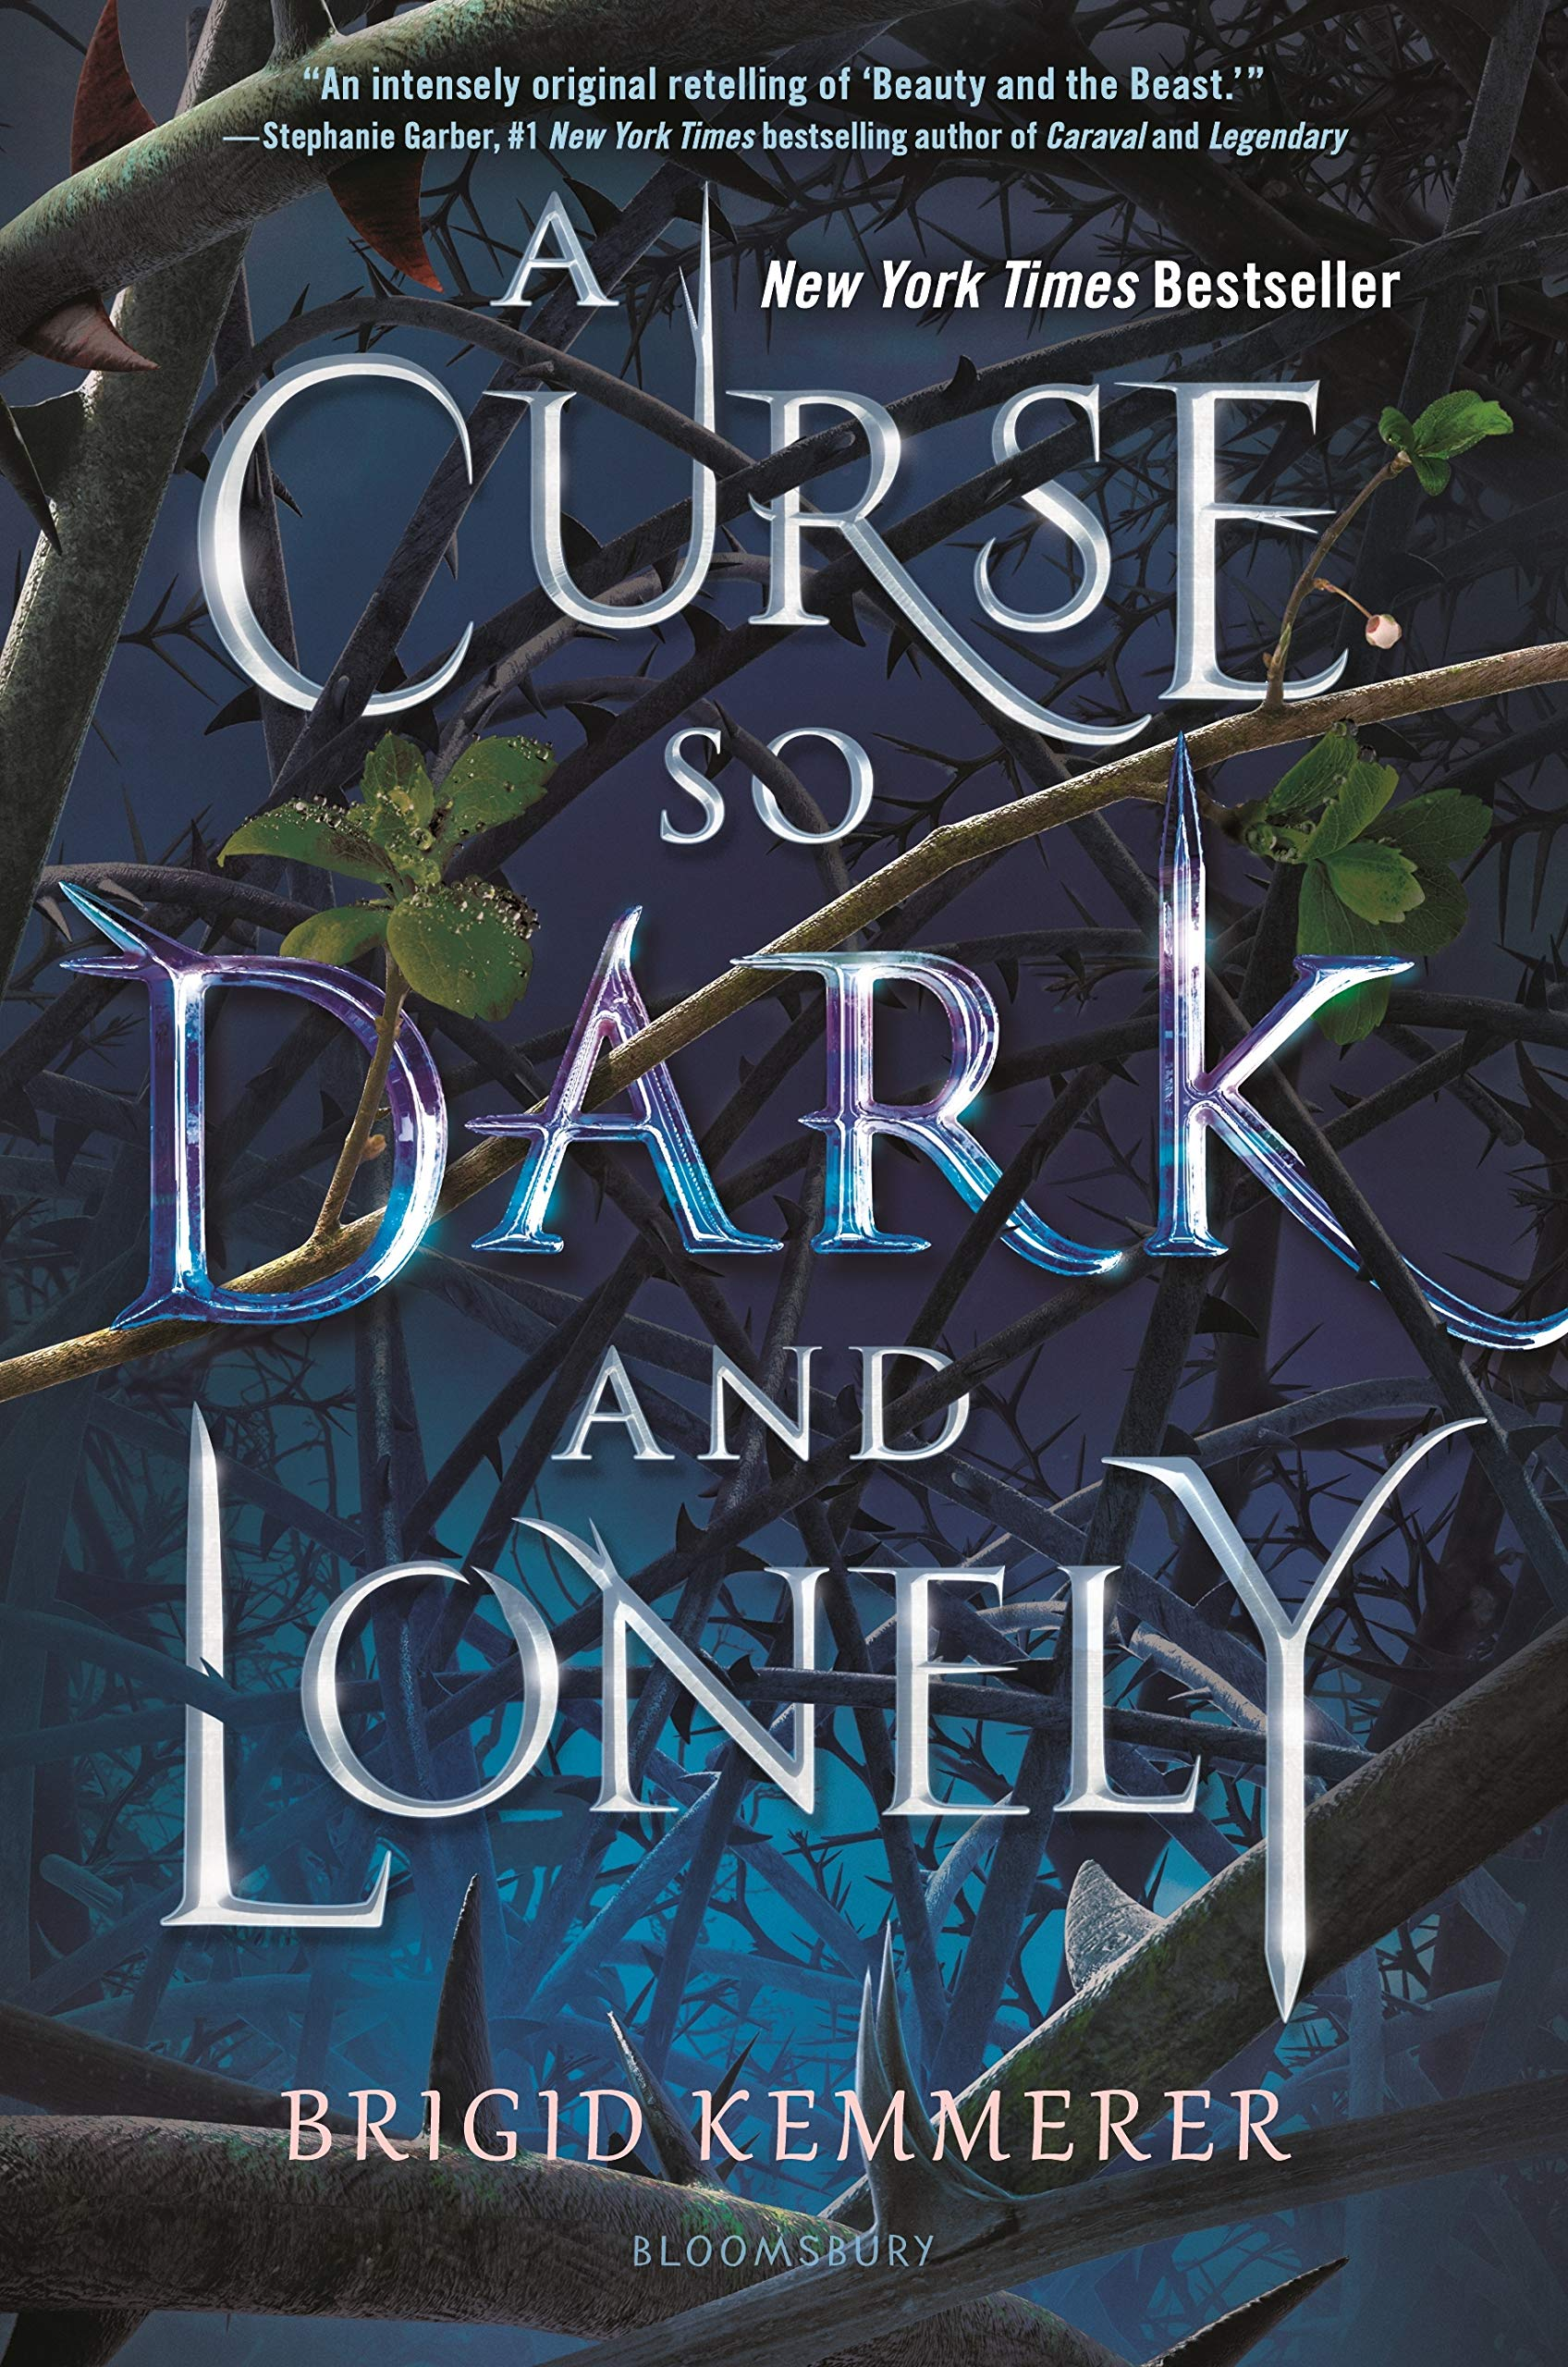 Amazon.com: A Curse So Dark and Lonely (The Cursebreaker Series)  (9781681195087): Kemmerer, Brigid: Books